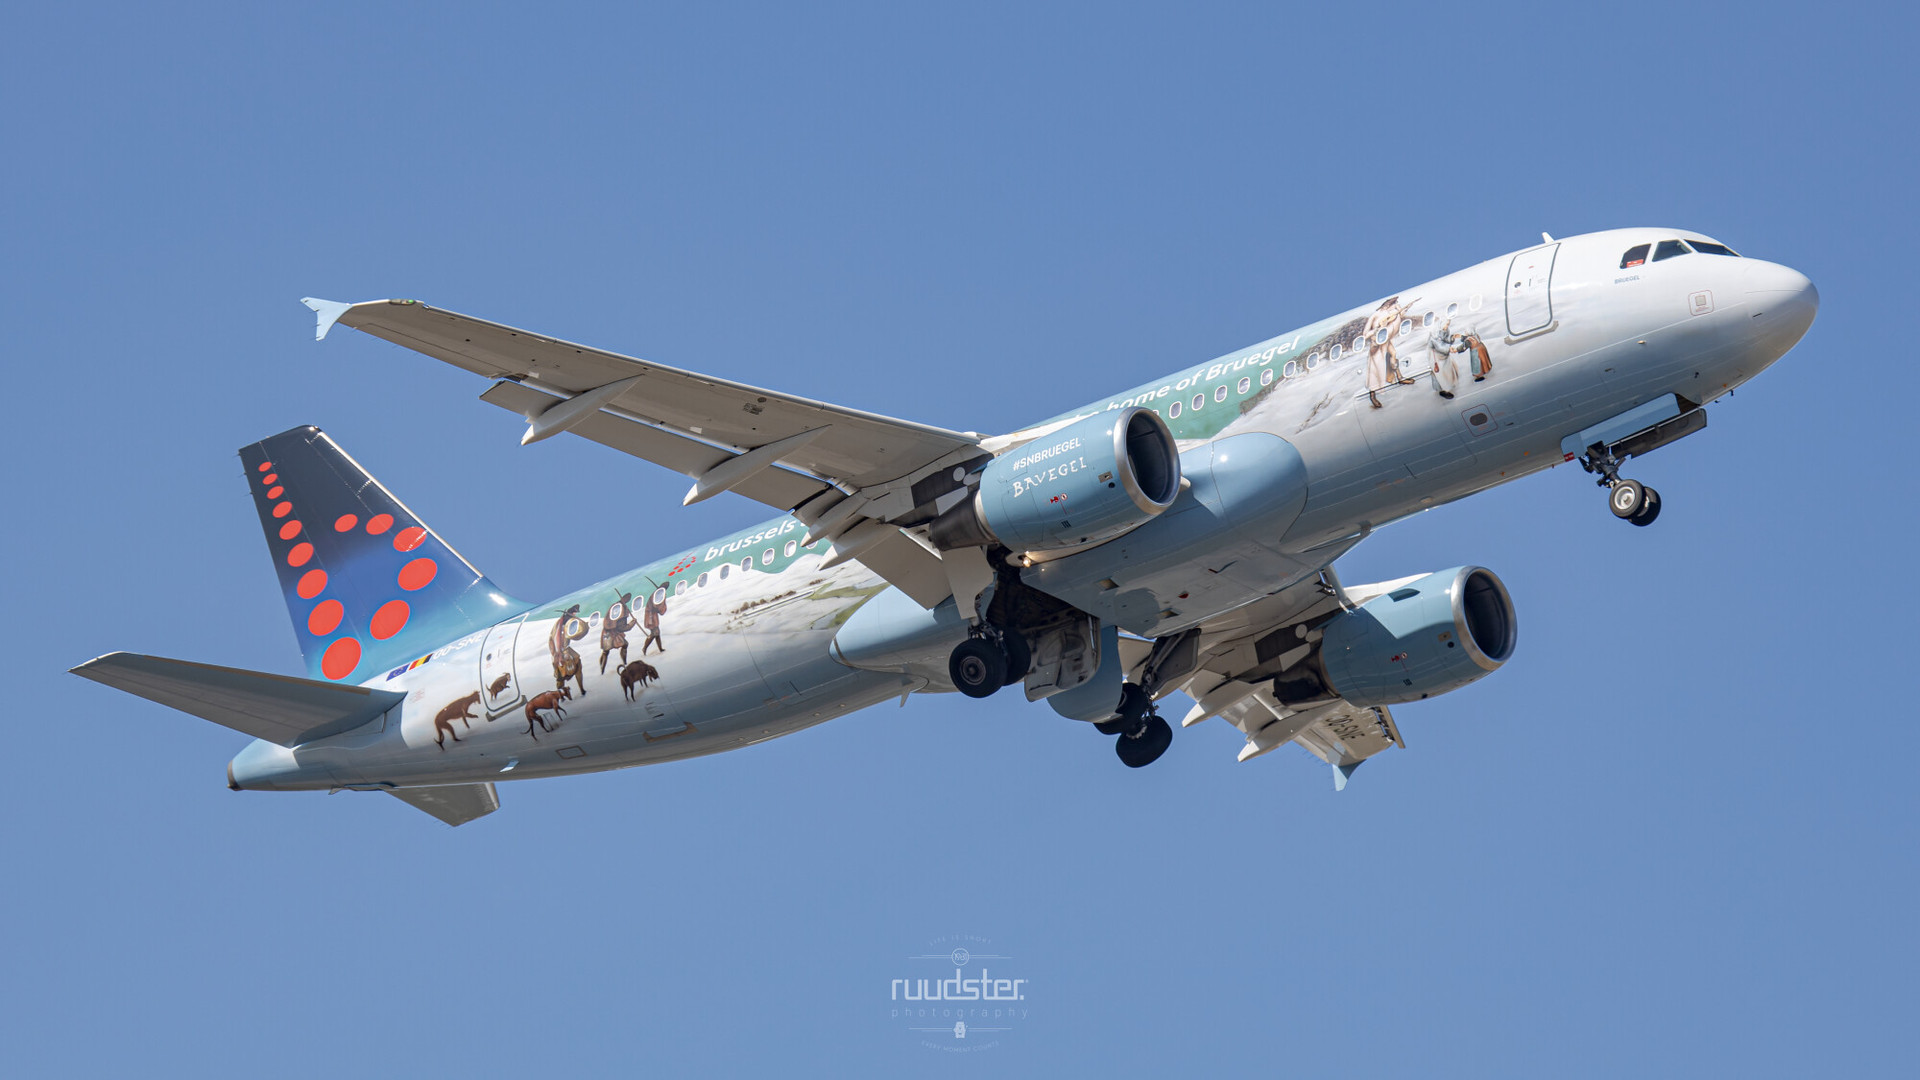 OO-SNE | Build: 2010 - Airbus A320-214